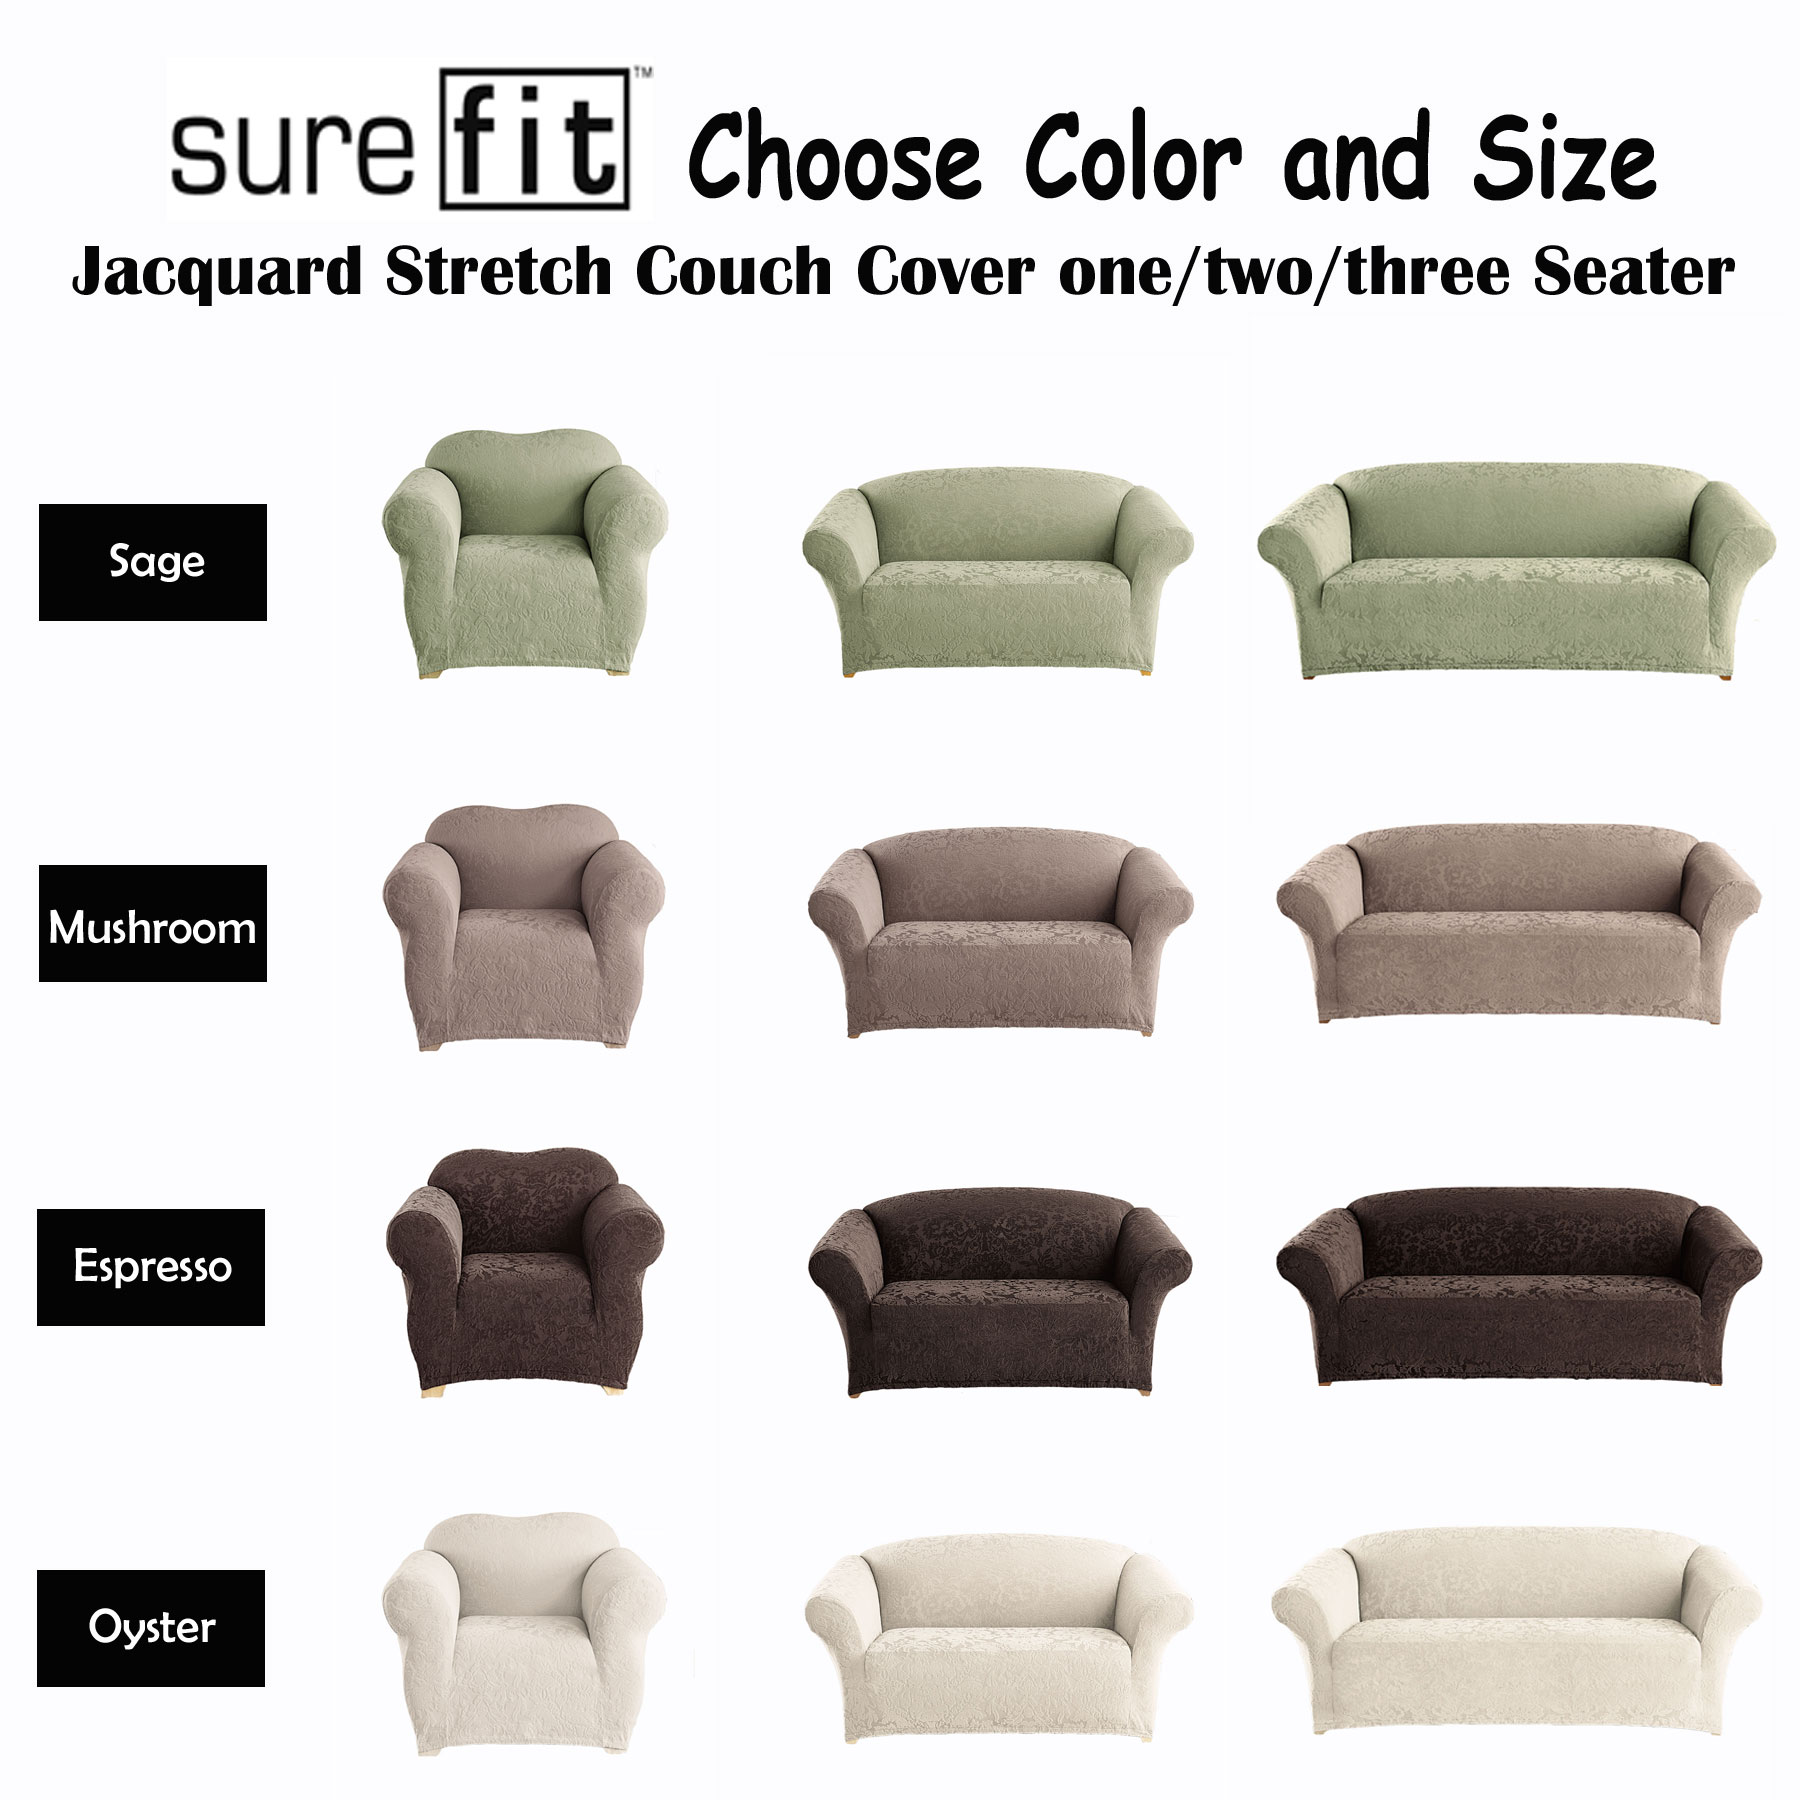 Stretch SUREFIT Jacquard Couch Cover   1 Seater, 2 Seater, 3 Seater   4